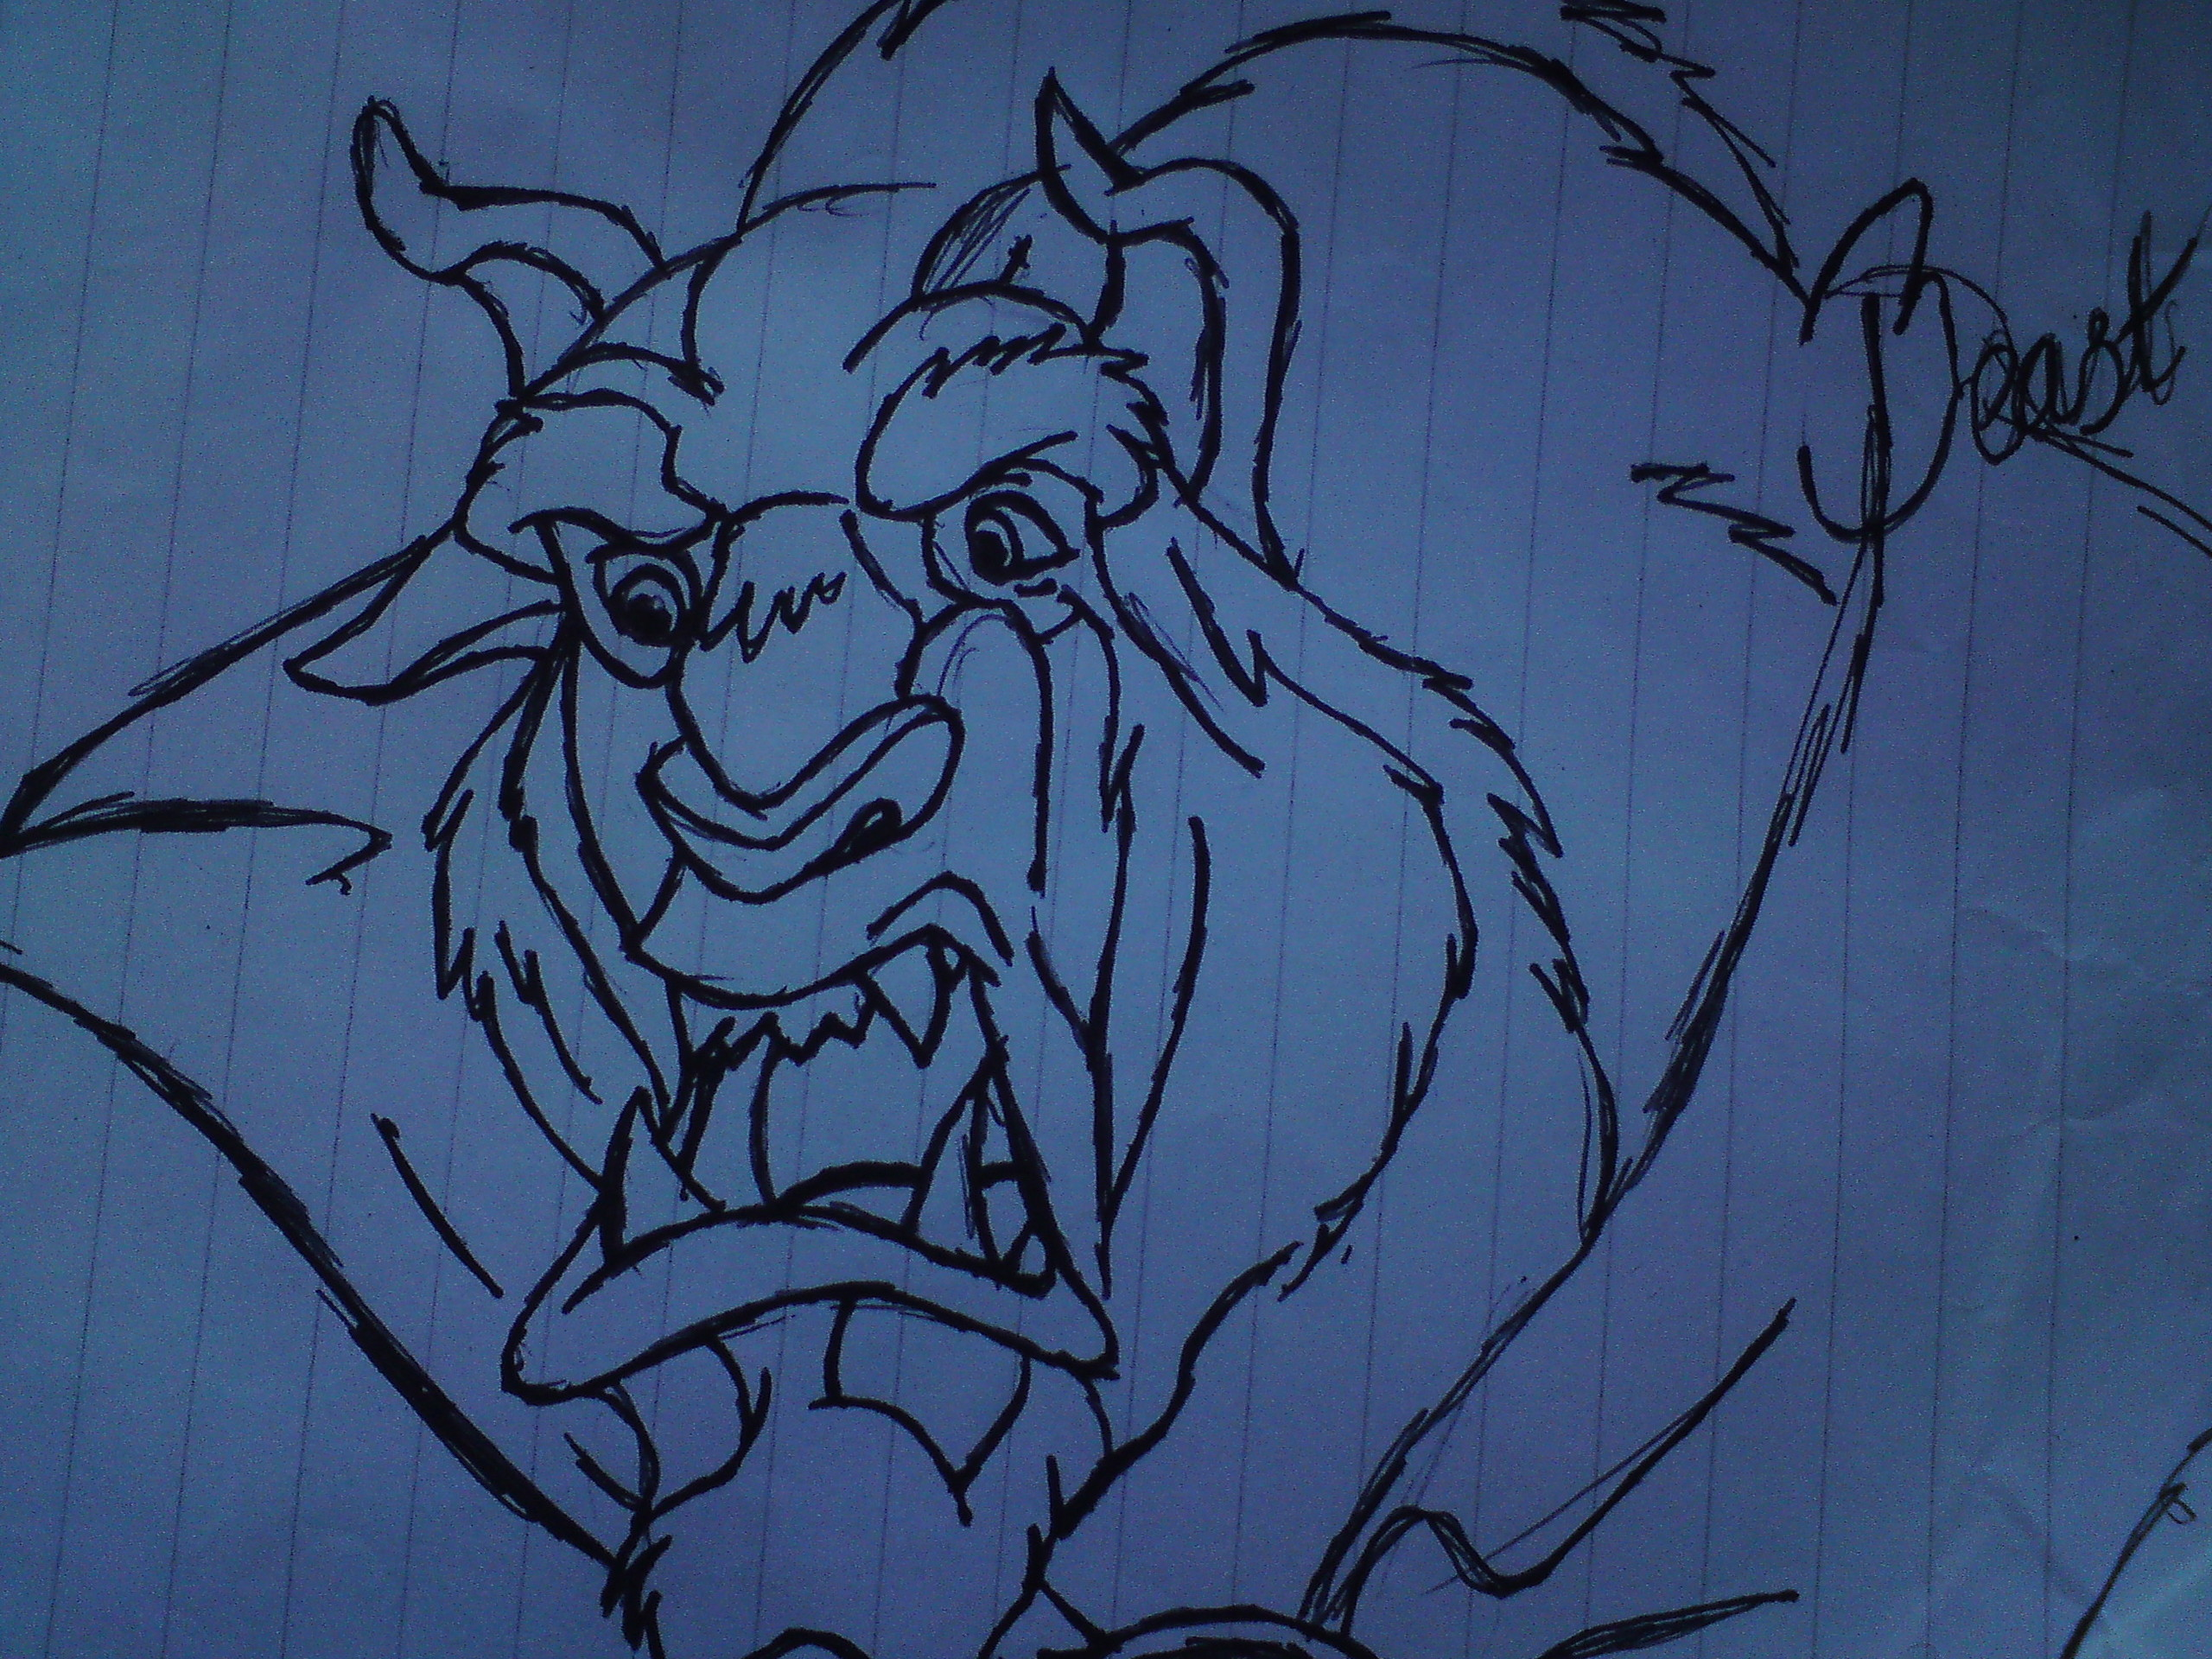 My Drawing of Beast